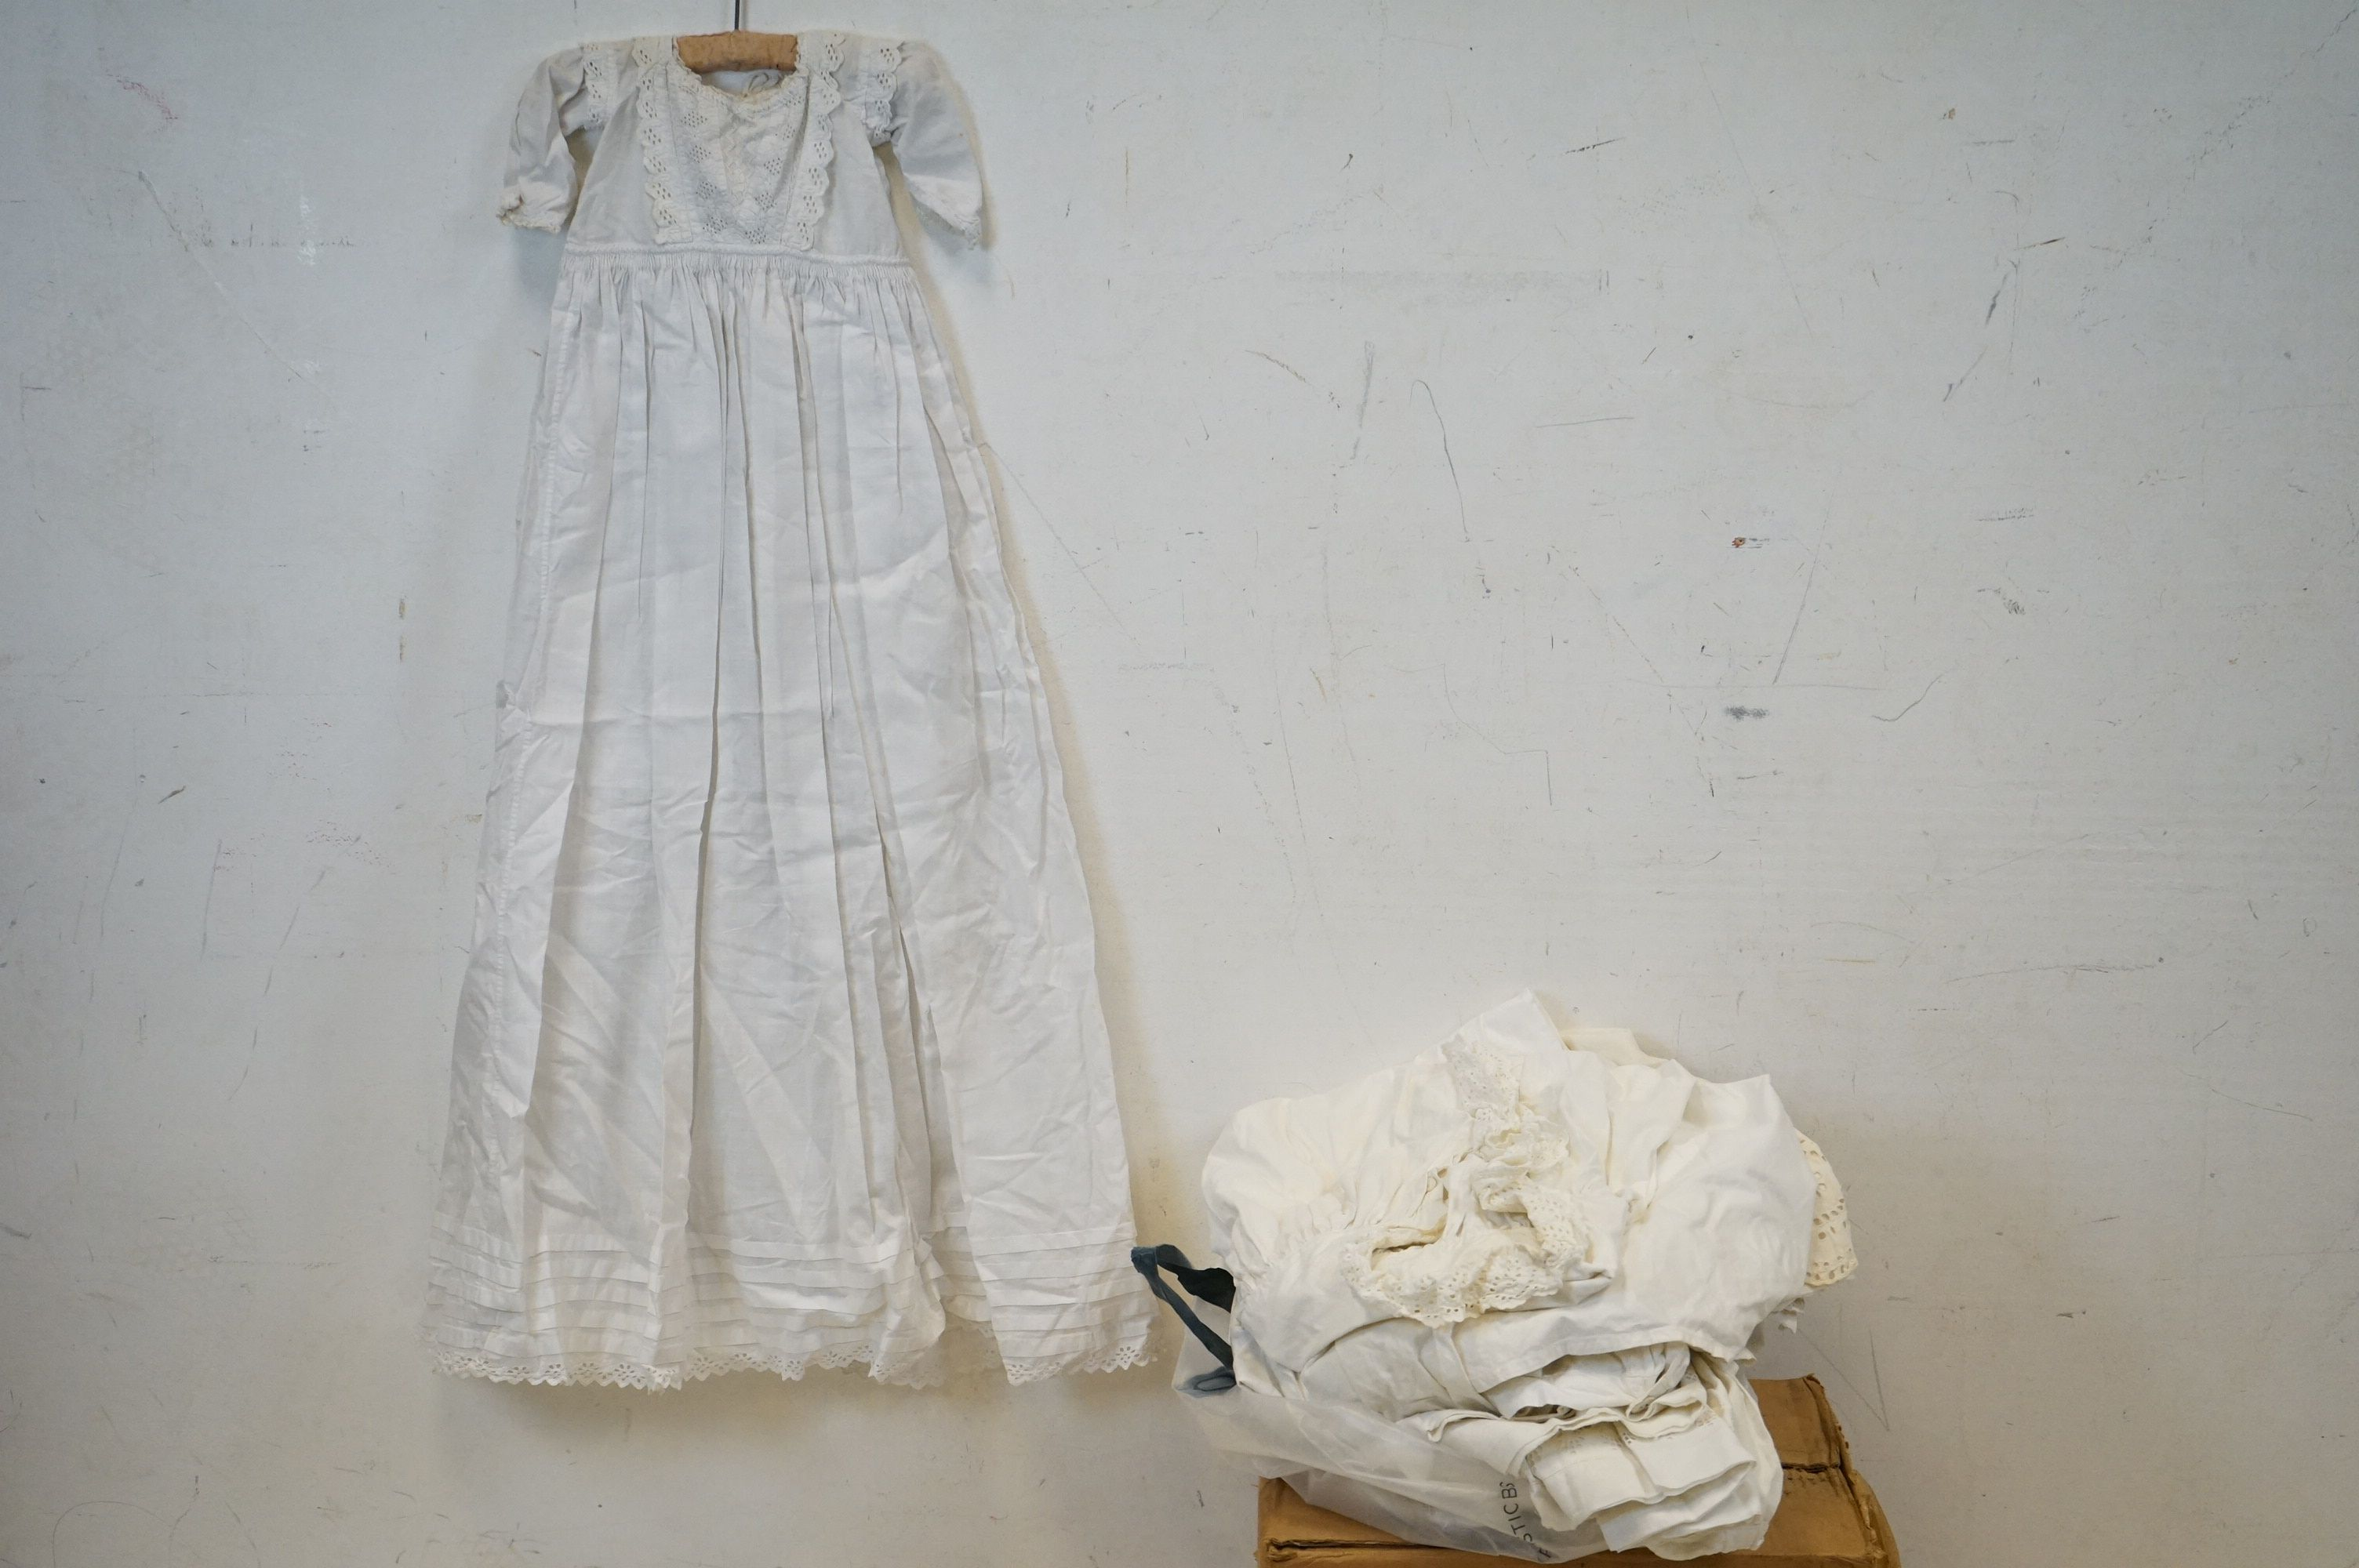 Six items of Victorian / Edwardian White Linen Clothing including Night Dresses, Underskirts and